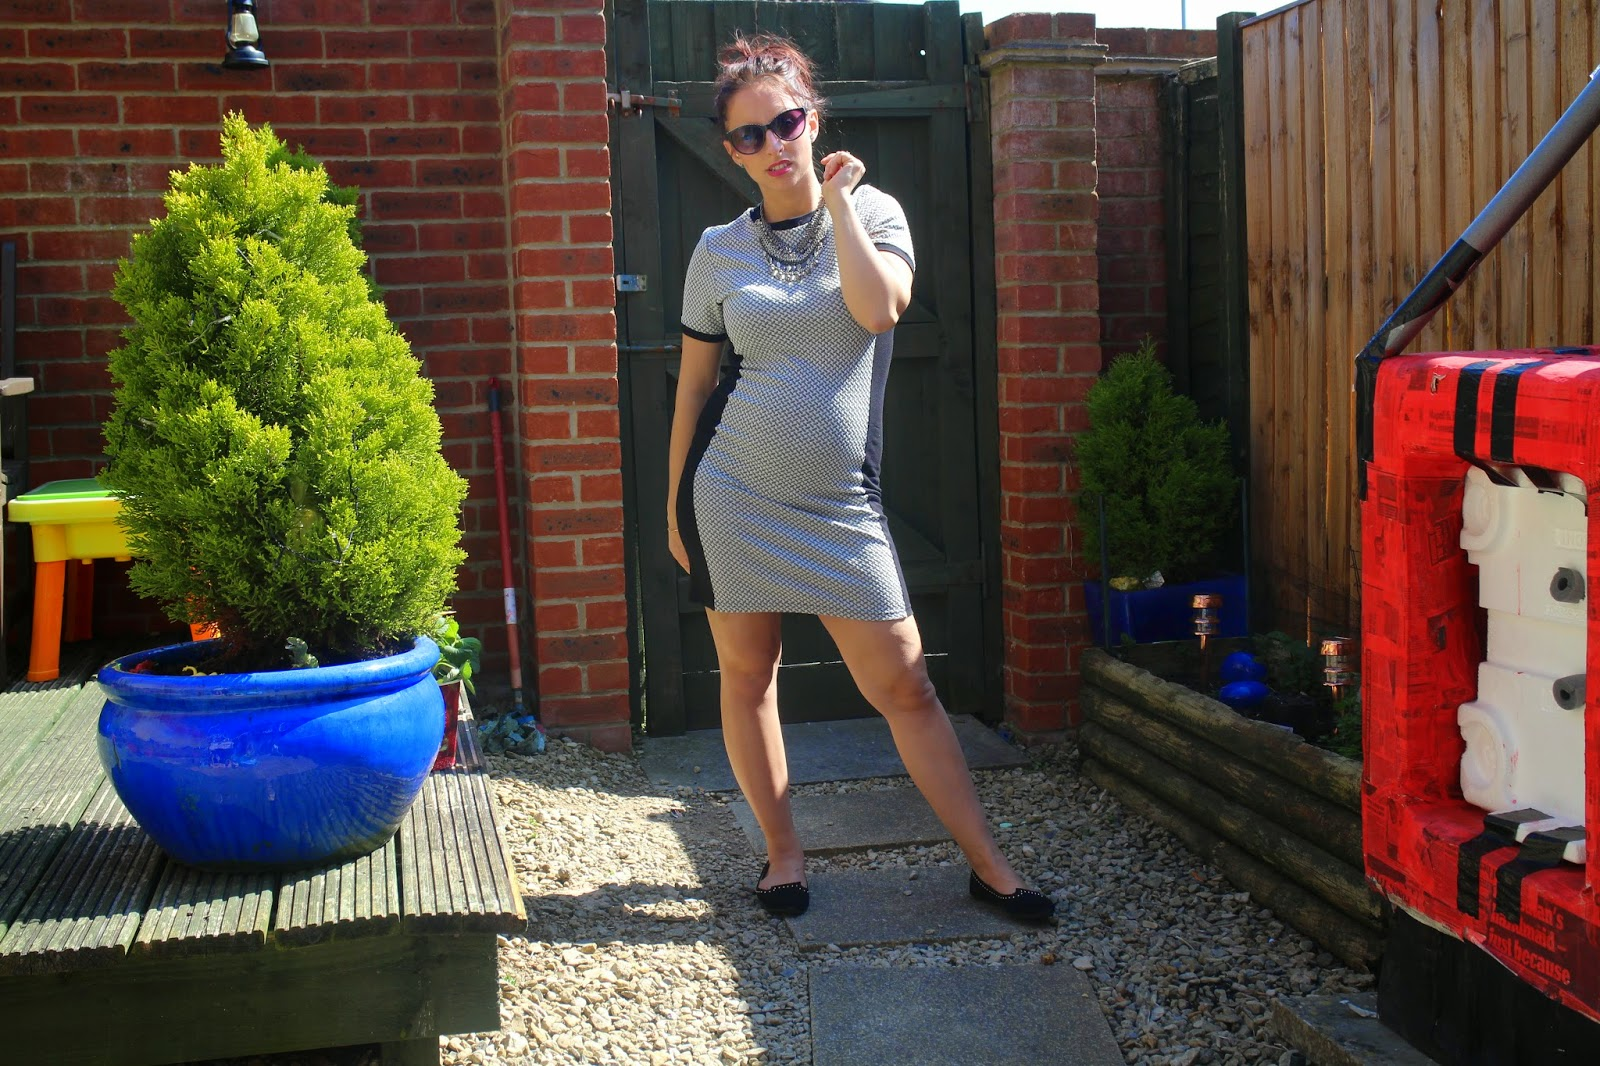 Fashion, Fashion inspiration, OOTD, Topshop, Maternity, Maternity style, how to dress when pregnant, what to wear when pregnant, office maternity wear, topshop maternity wear